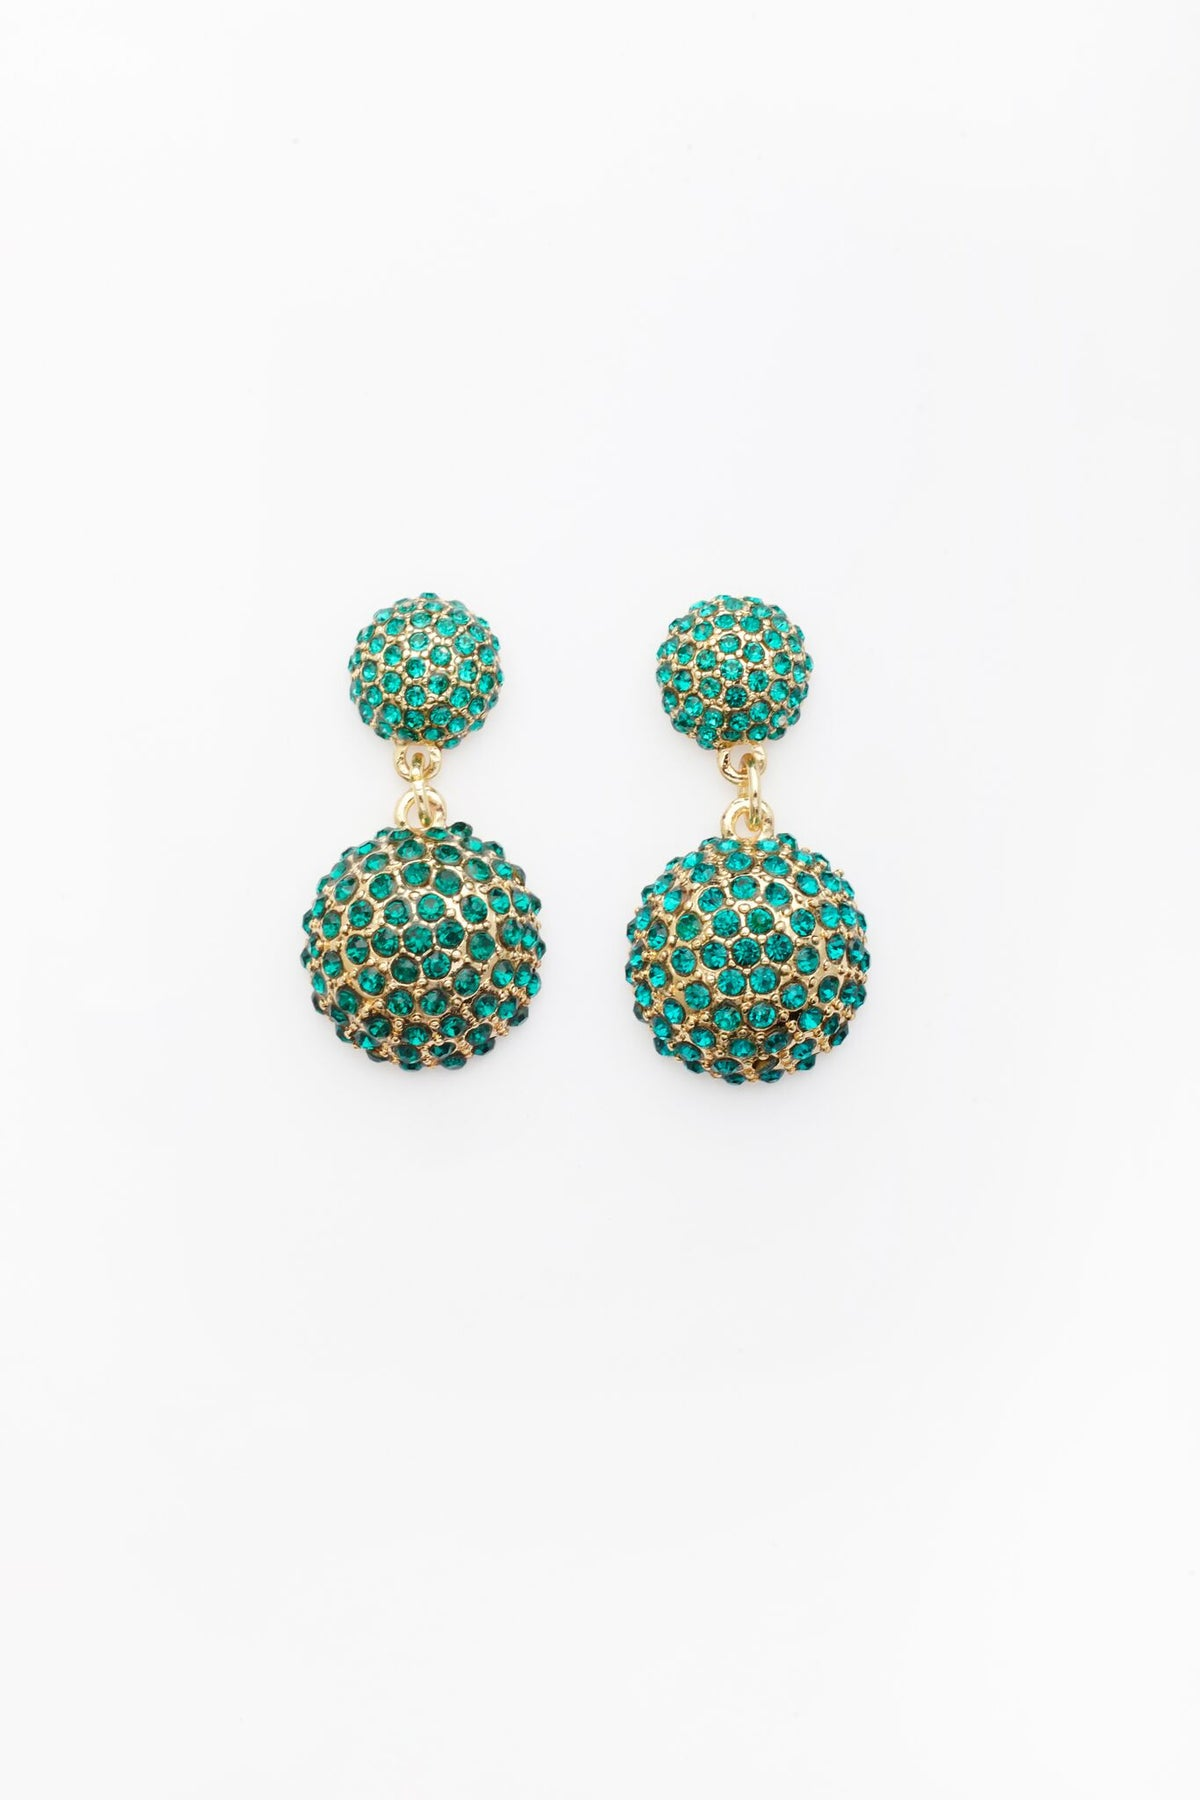 Obfuscation Earrings in Green